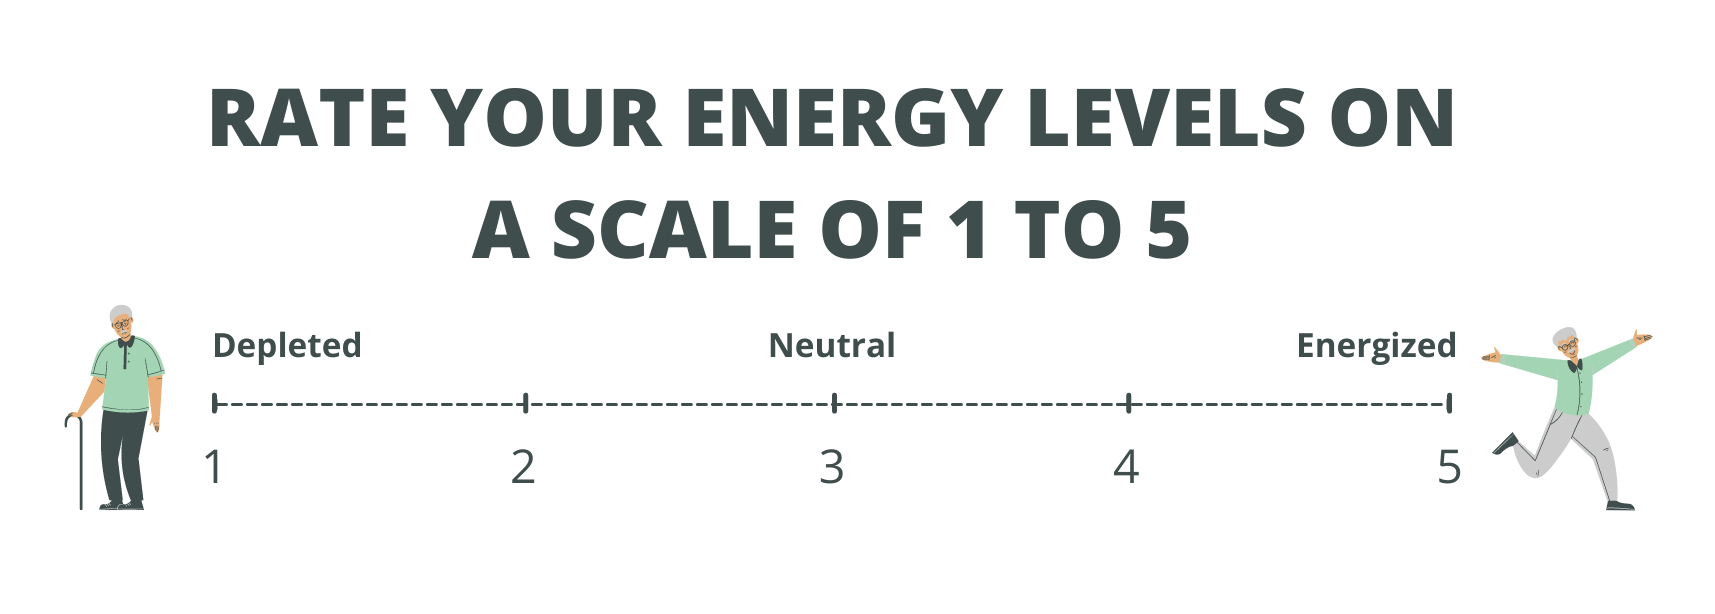 rate your energy levels from 1 to 5 for everything that you do with 1 being depleted and 5 being energized